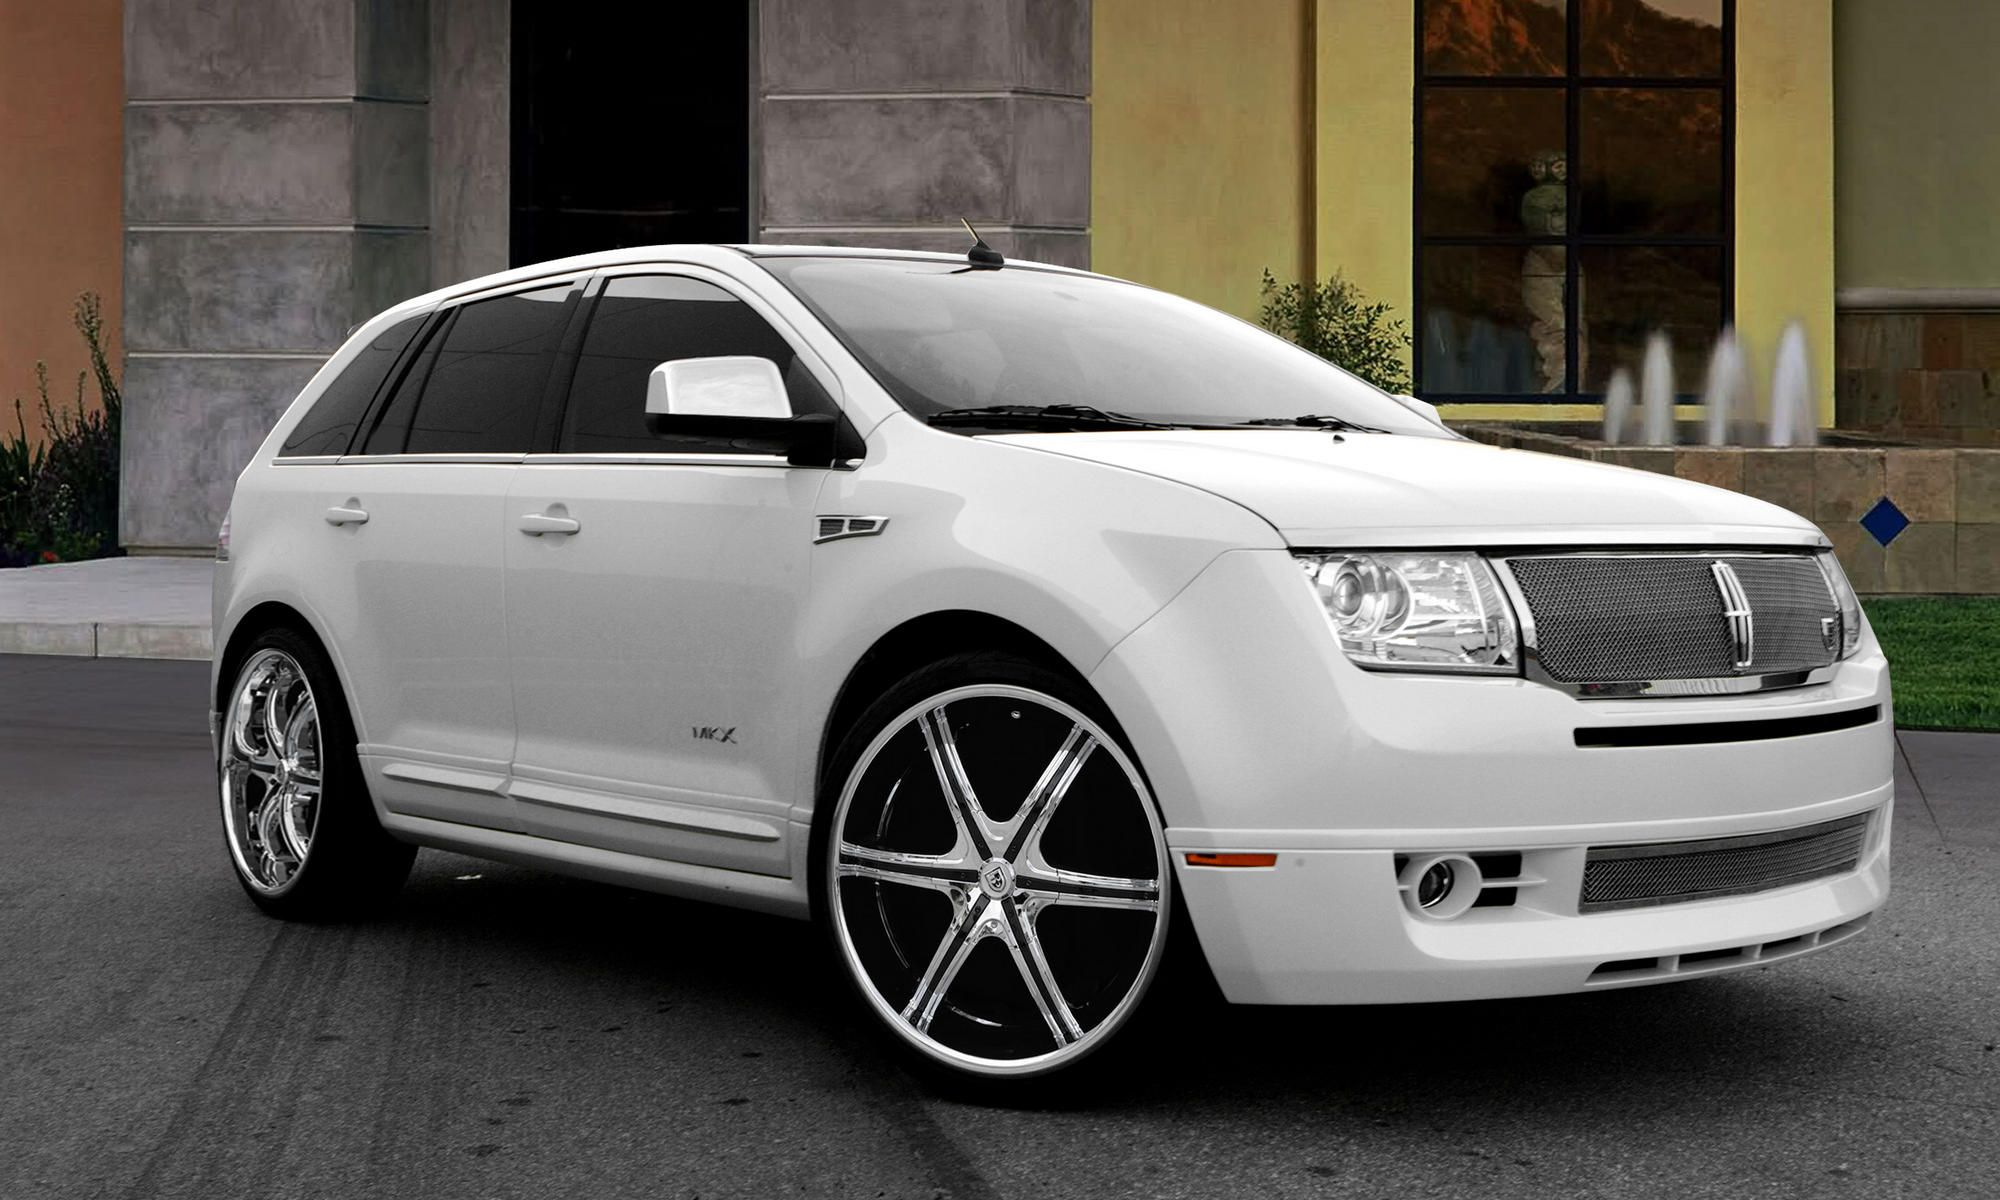 148469db48105aae36ed32be88b6d96f lexani wheels, the leader in custom luxury wheels white lincoln 2008 MKX Interior at honlapkeszites.co